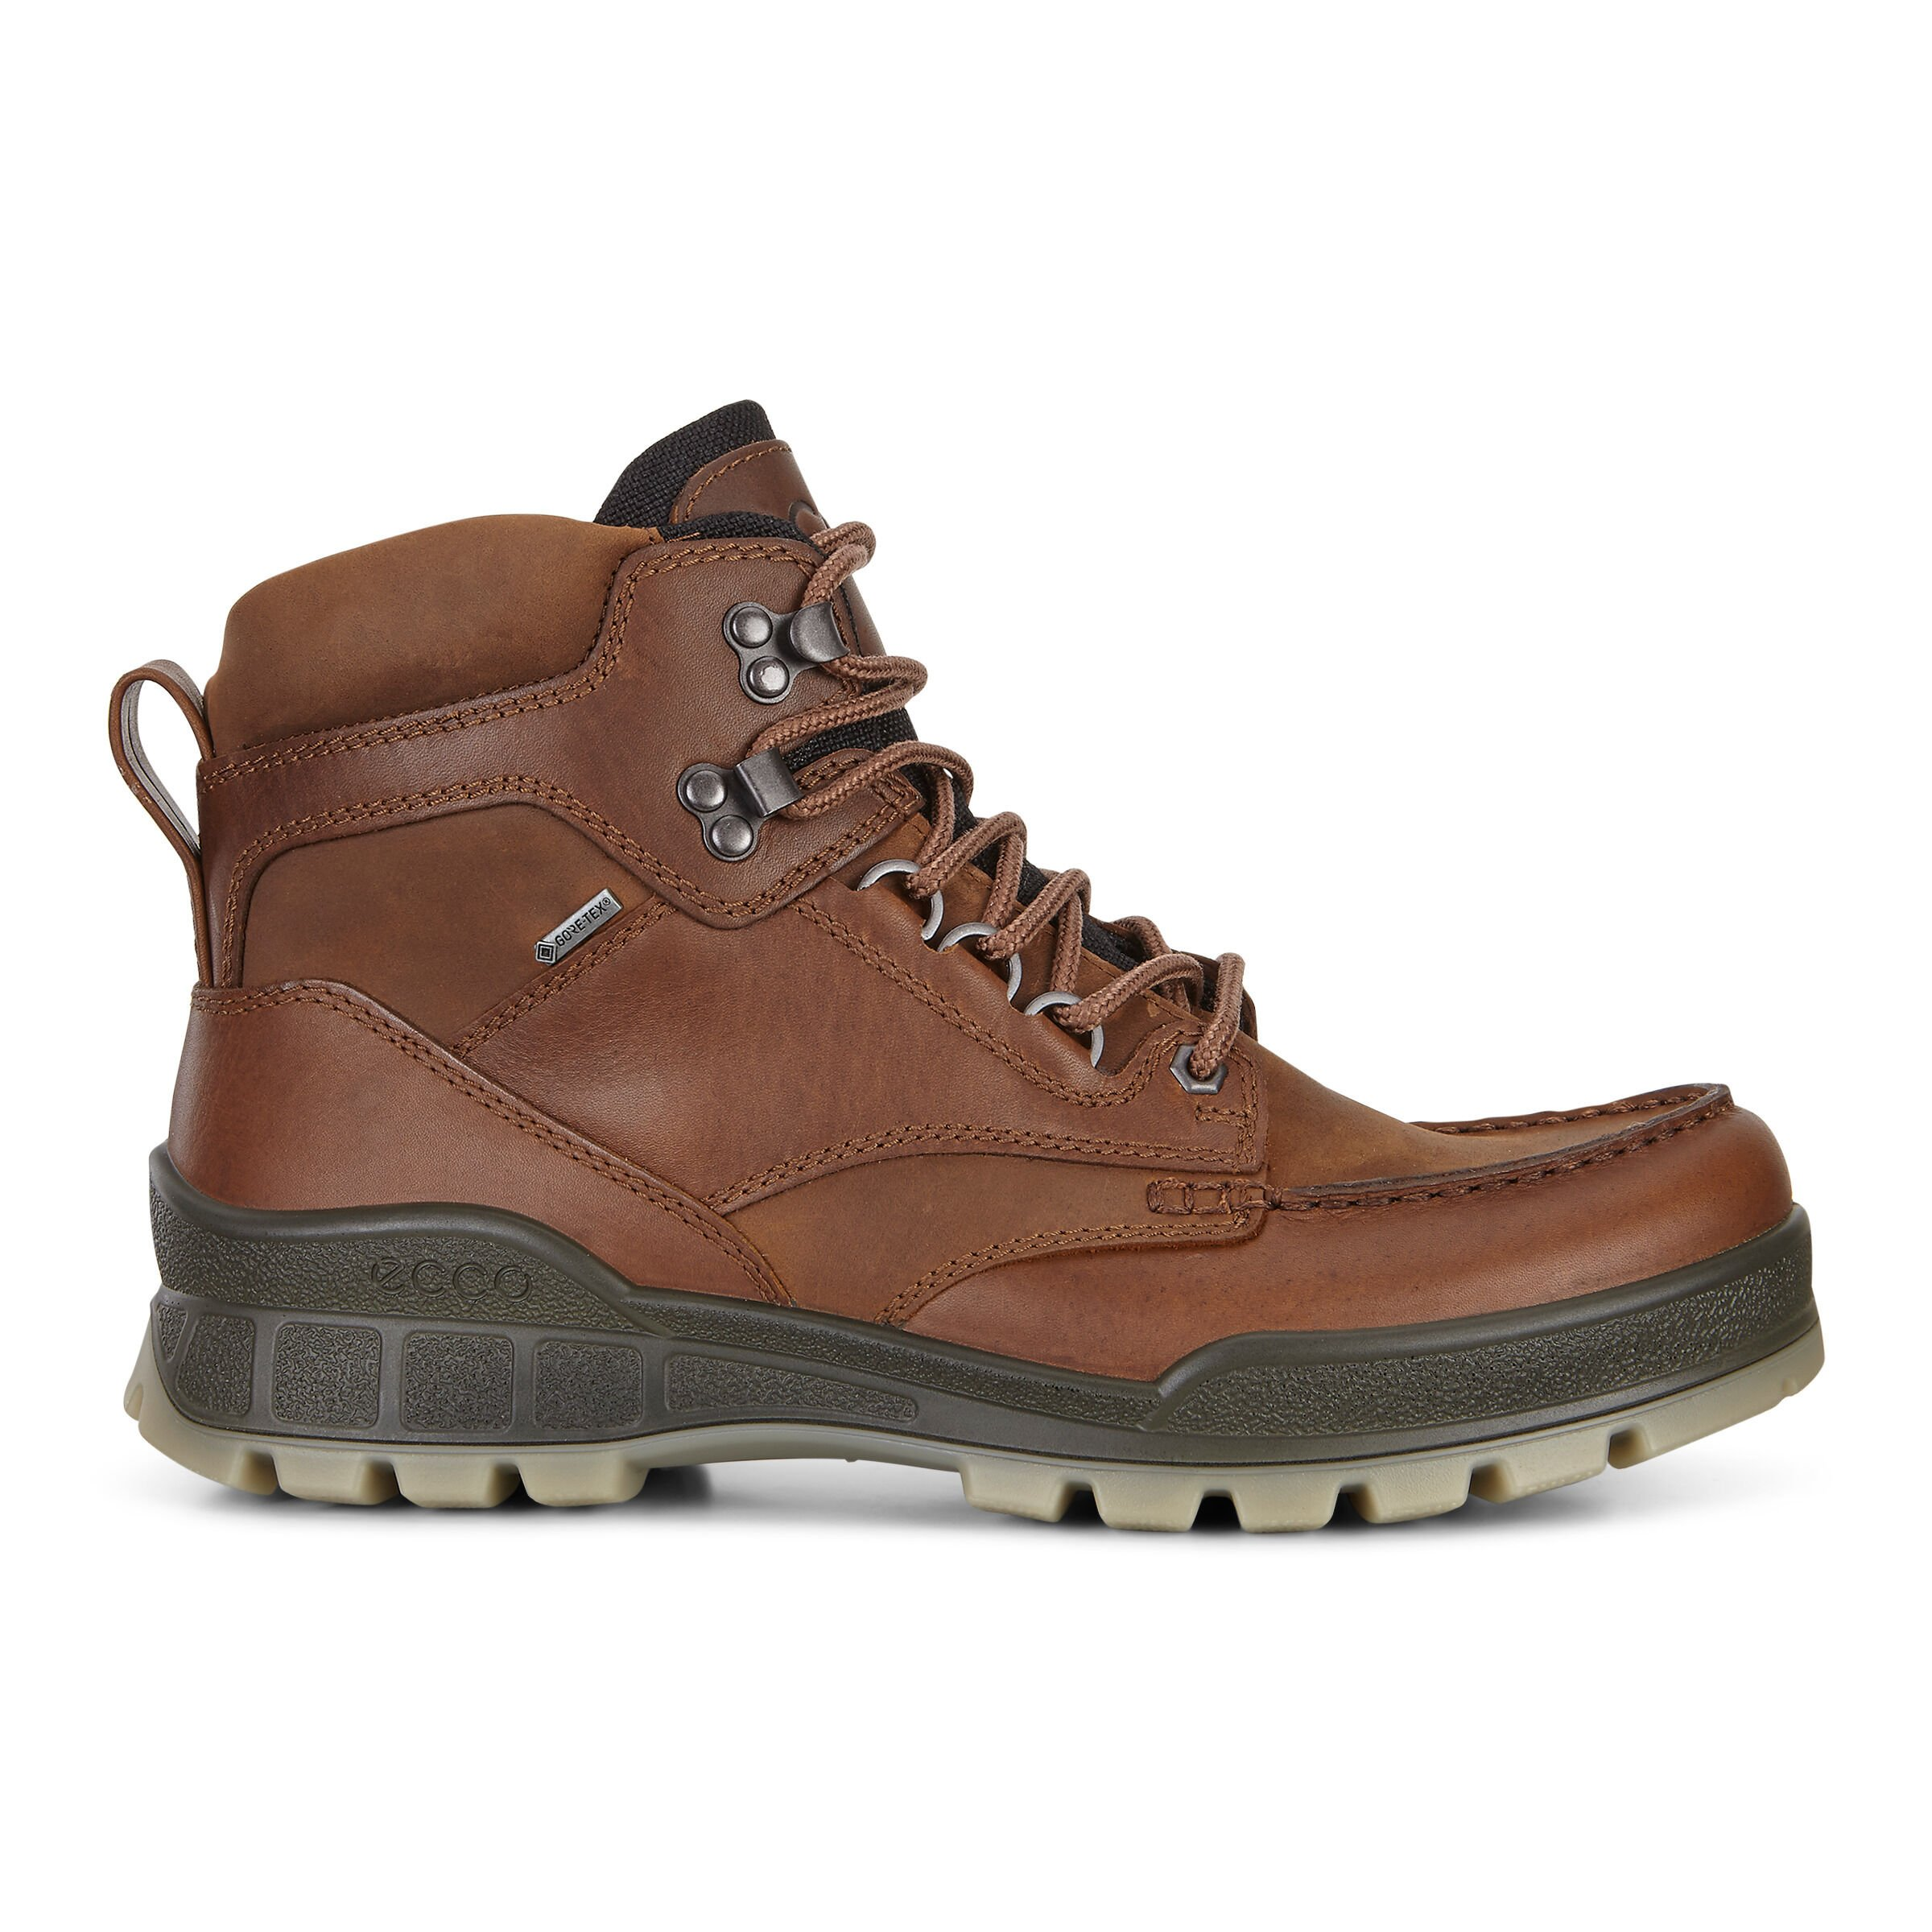 Men's Hiking Shoes \u0026 Trail Shoes | ECCO